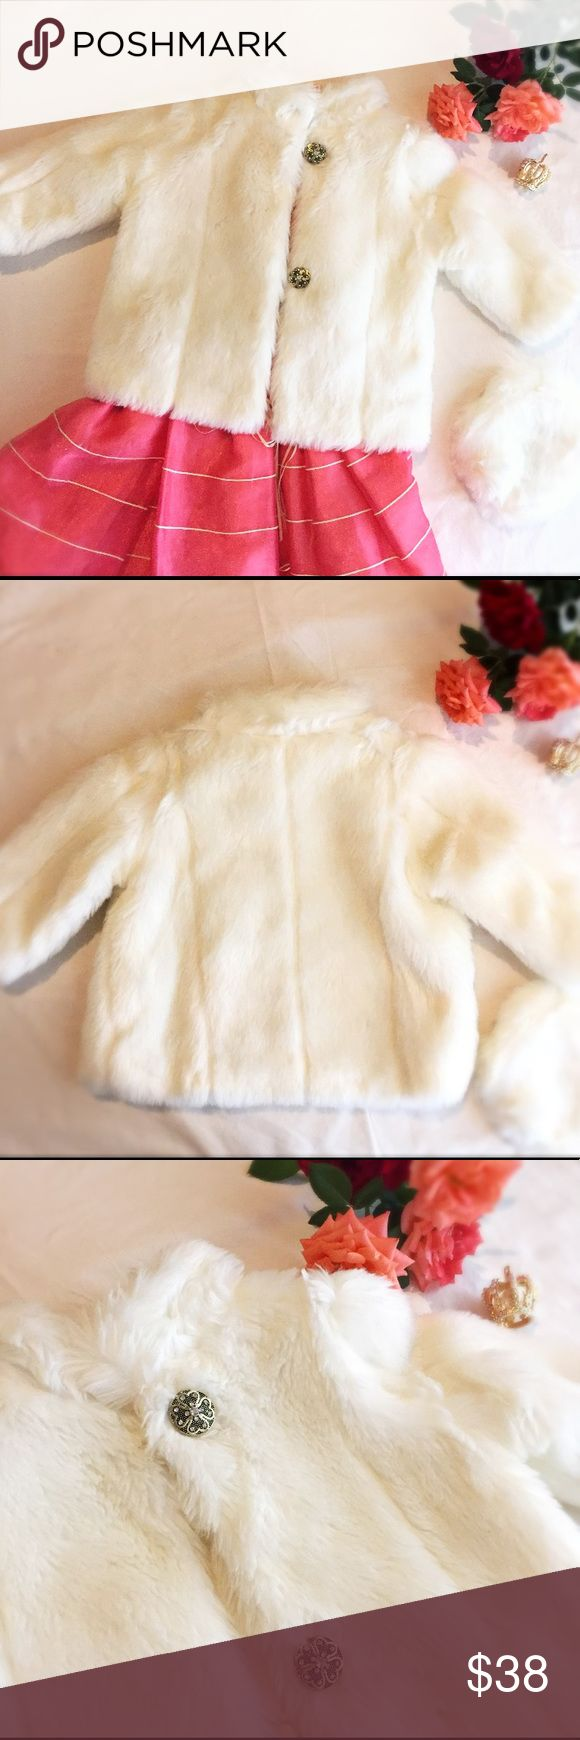 """Furry White Toddler Girls Coat Size 2. Furry White Toddler Girls Coat Size 2. Super soft furry coat with fancy buttons. Includes an adjustable hat of the same coat's material. 100% polyester and approximately 15 1/2"""" length and width and 12"""" sleeve's length. Jackets & Coats"""